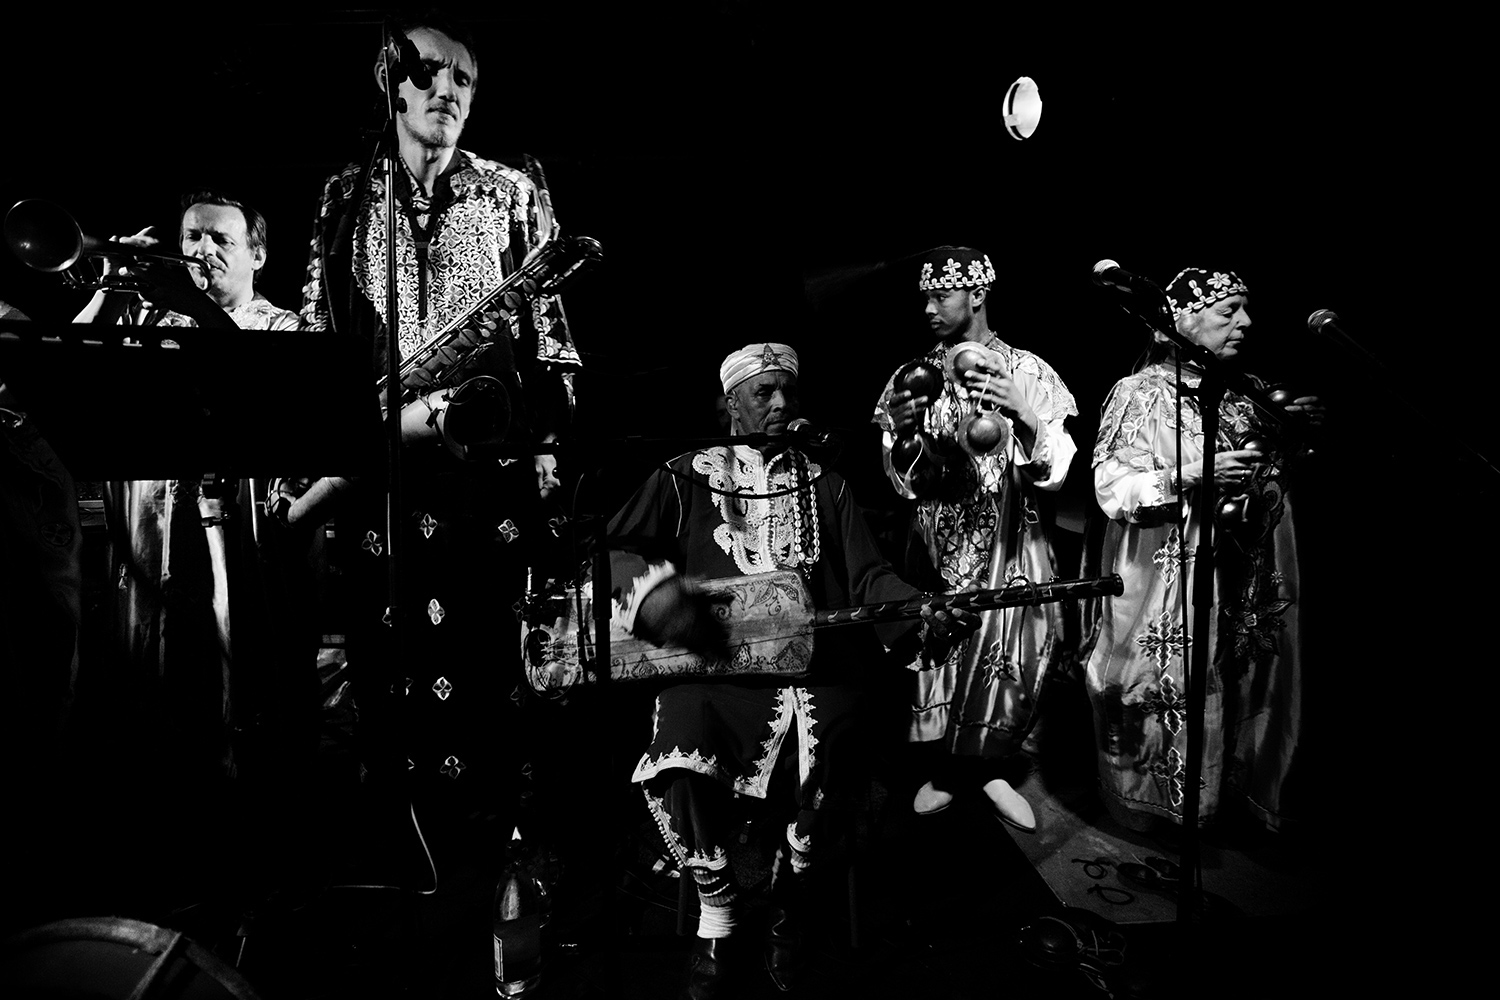 Trance Mission Gnawa - Concert - Les Ateliers Claus - Brussels, Belgium